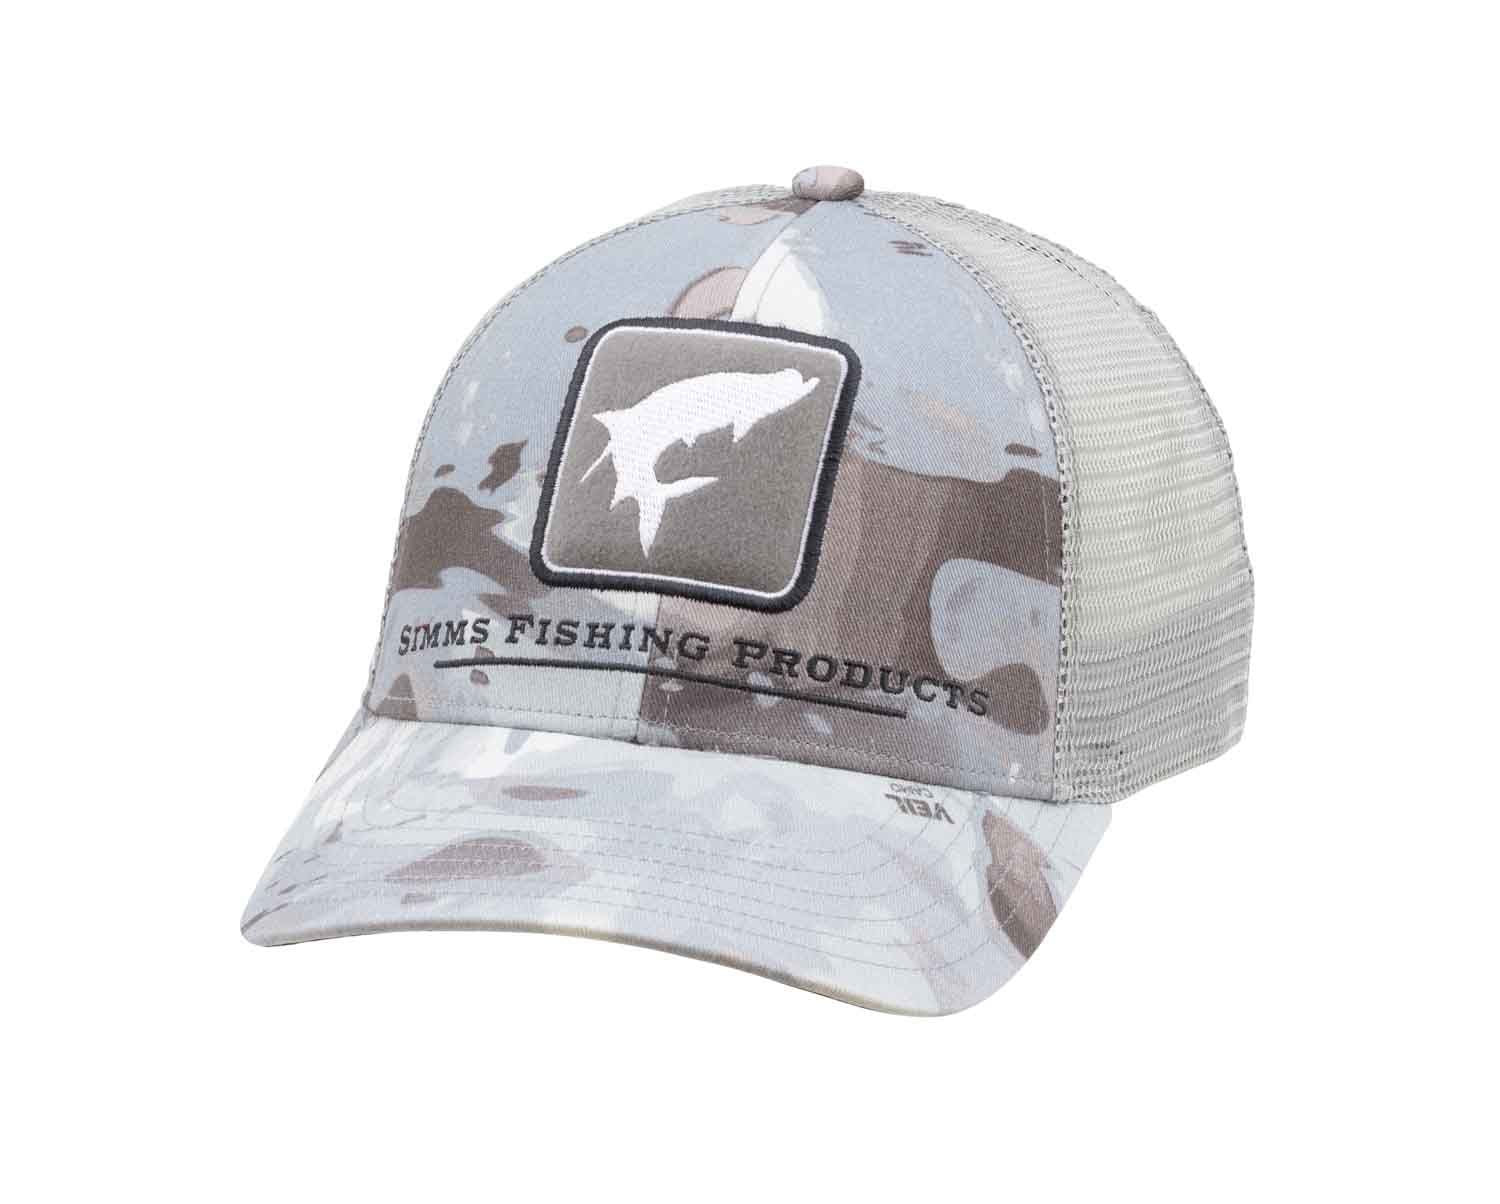 865355f90254c Trucker Hats - Andy Thornal Company